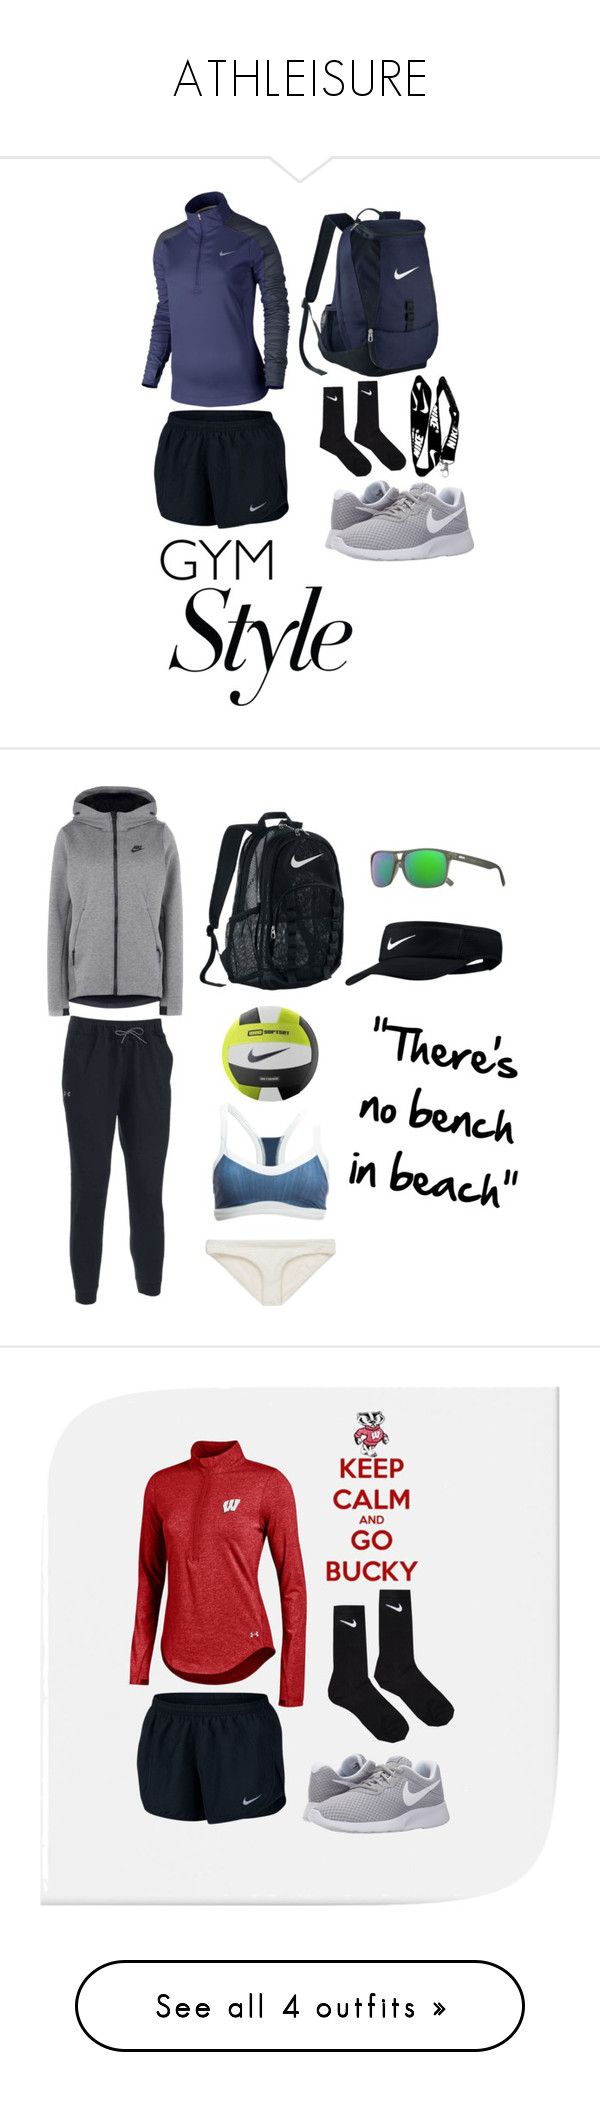 """""""ATHLEISURE"""" by graceschaf on Polyvore featuring NIKE, Under Armour, Revo, Vitamin A, Seafolly and Icebreaker"""